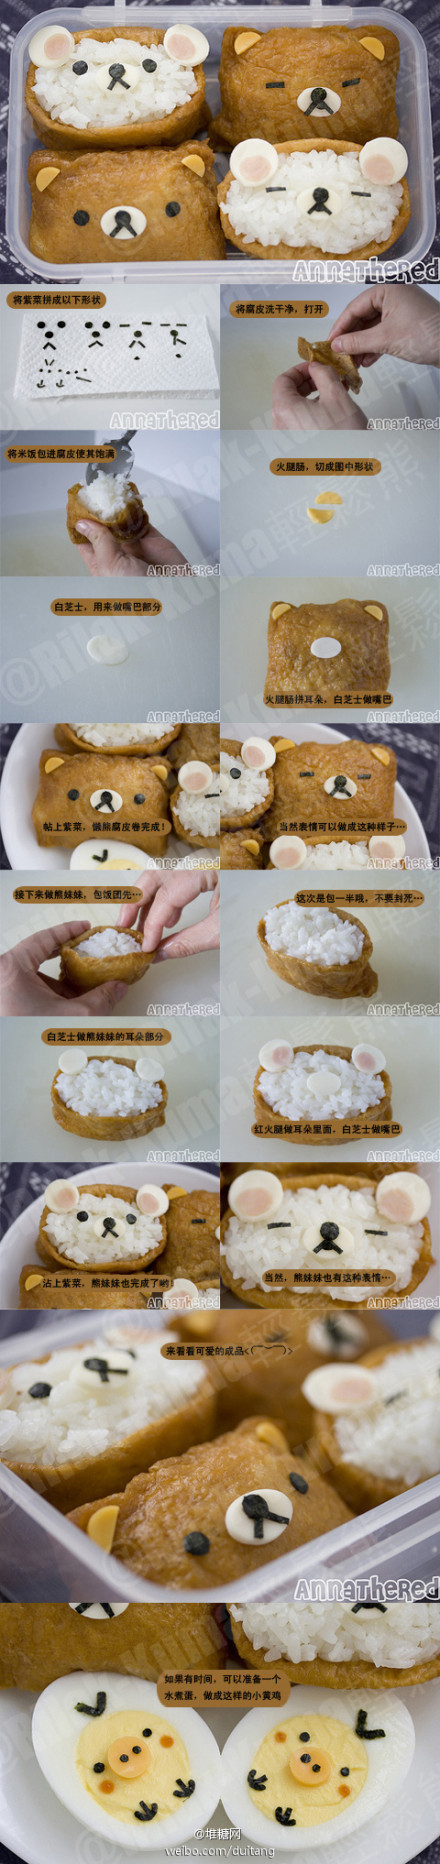 one does not simply eat a rilakkuma onigiri